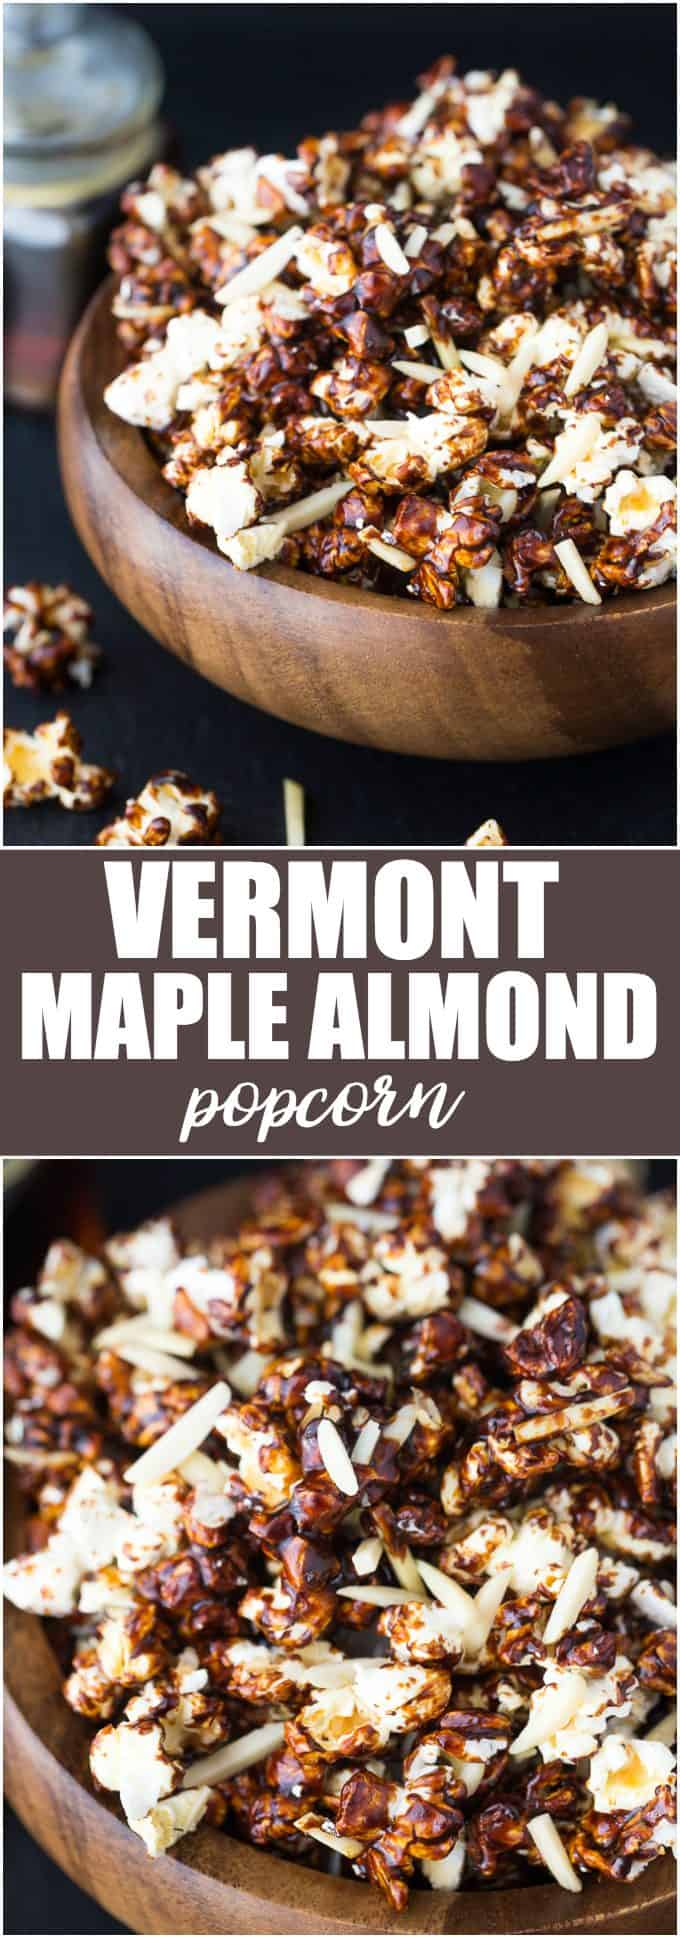 Vermont Maple Almond Popcorn - A deliciously sweet and crunchy snack!